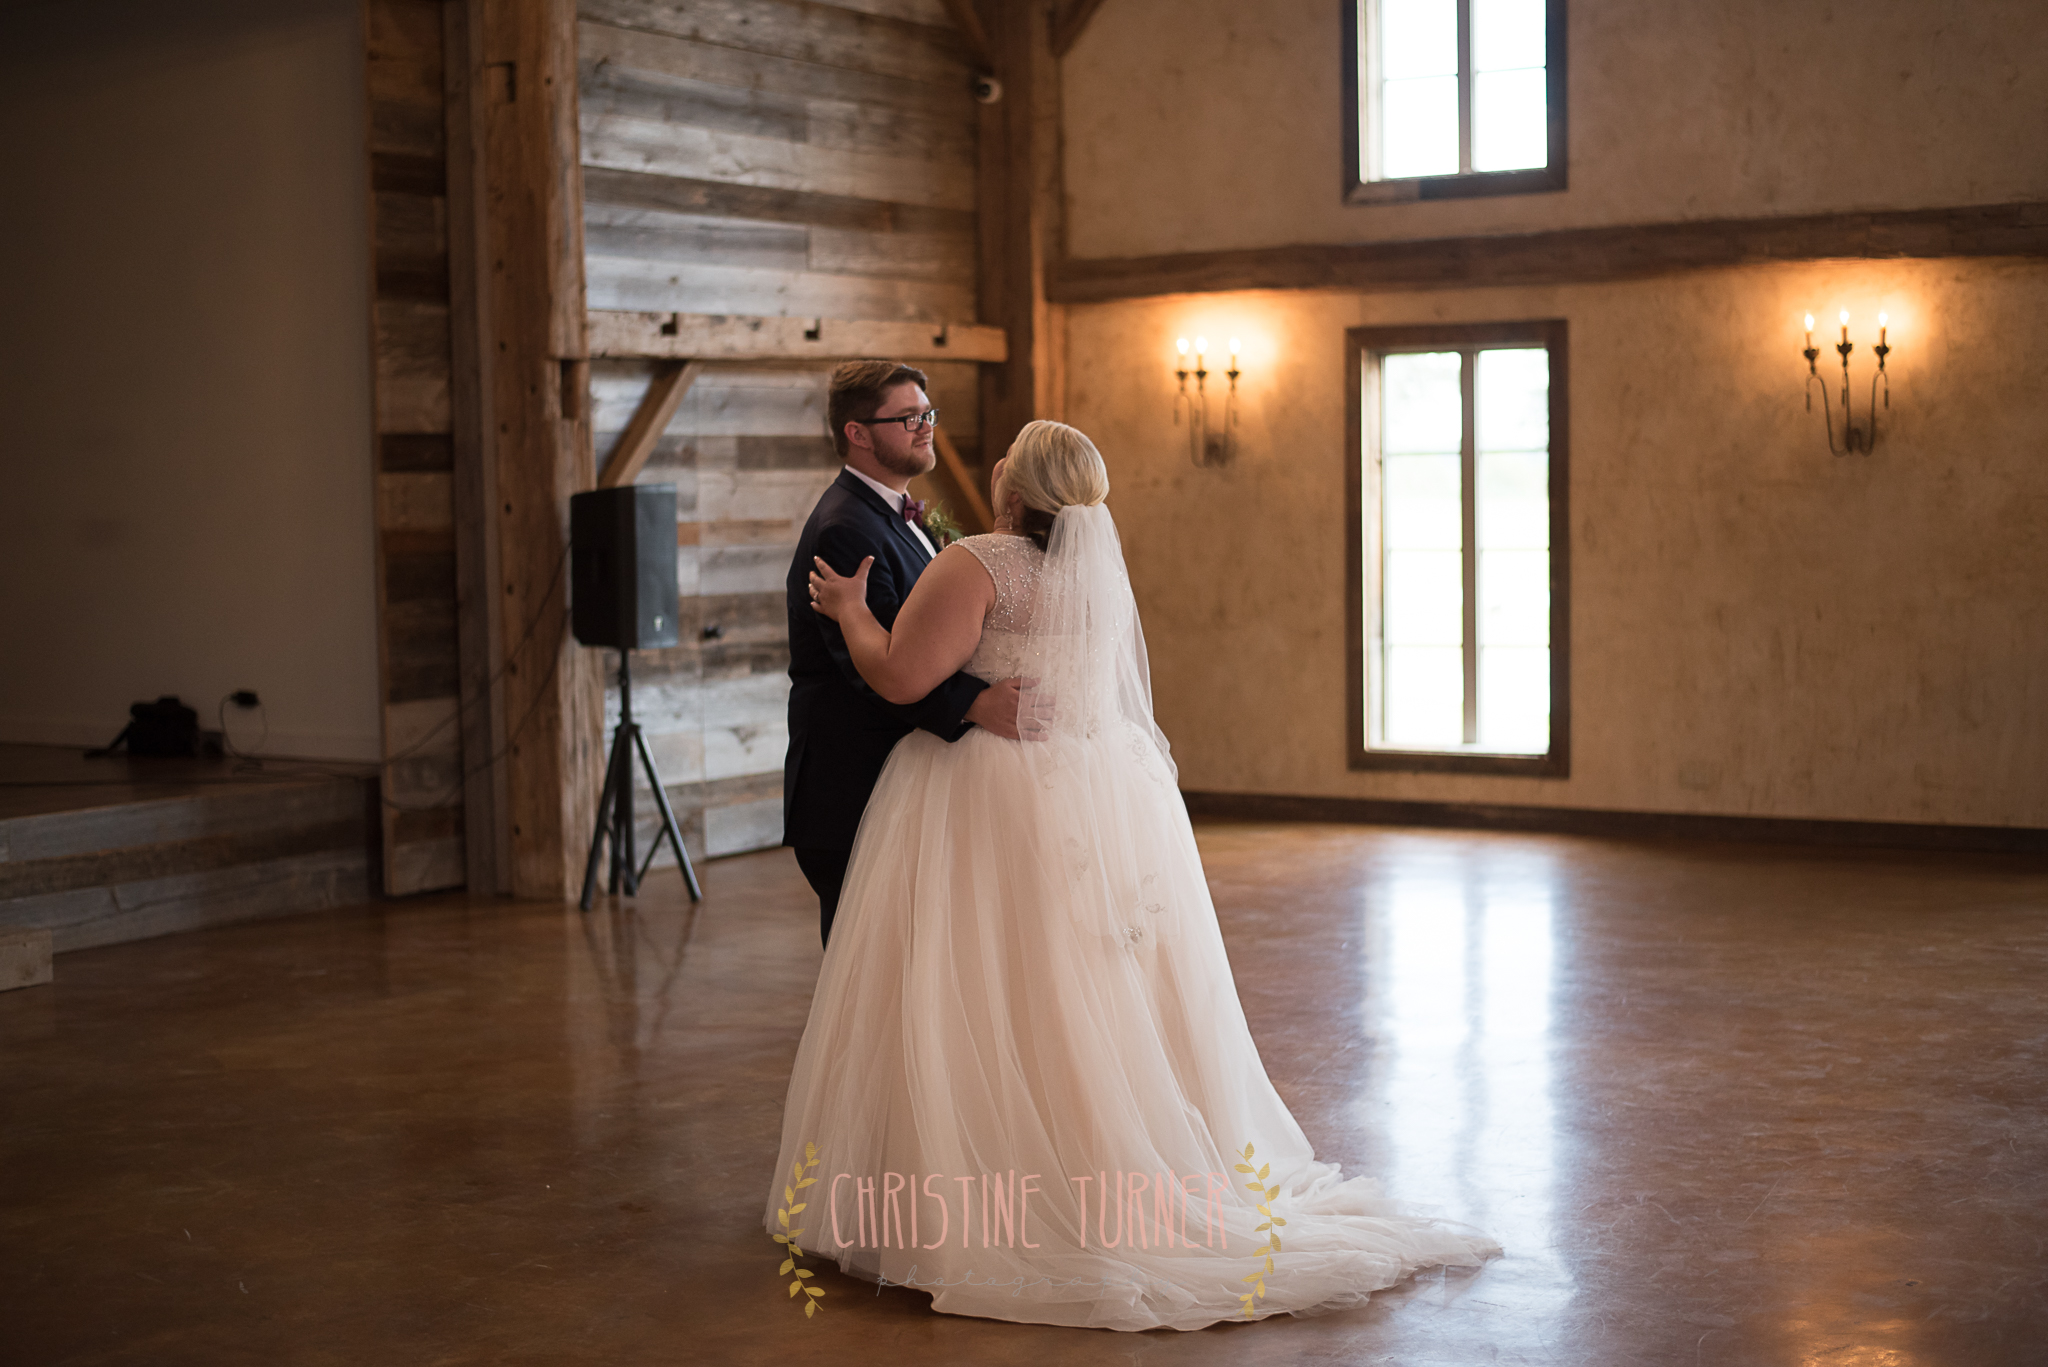 Duell Wedding (37 of 54)